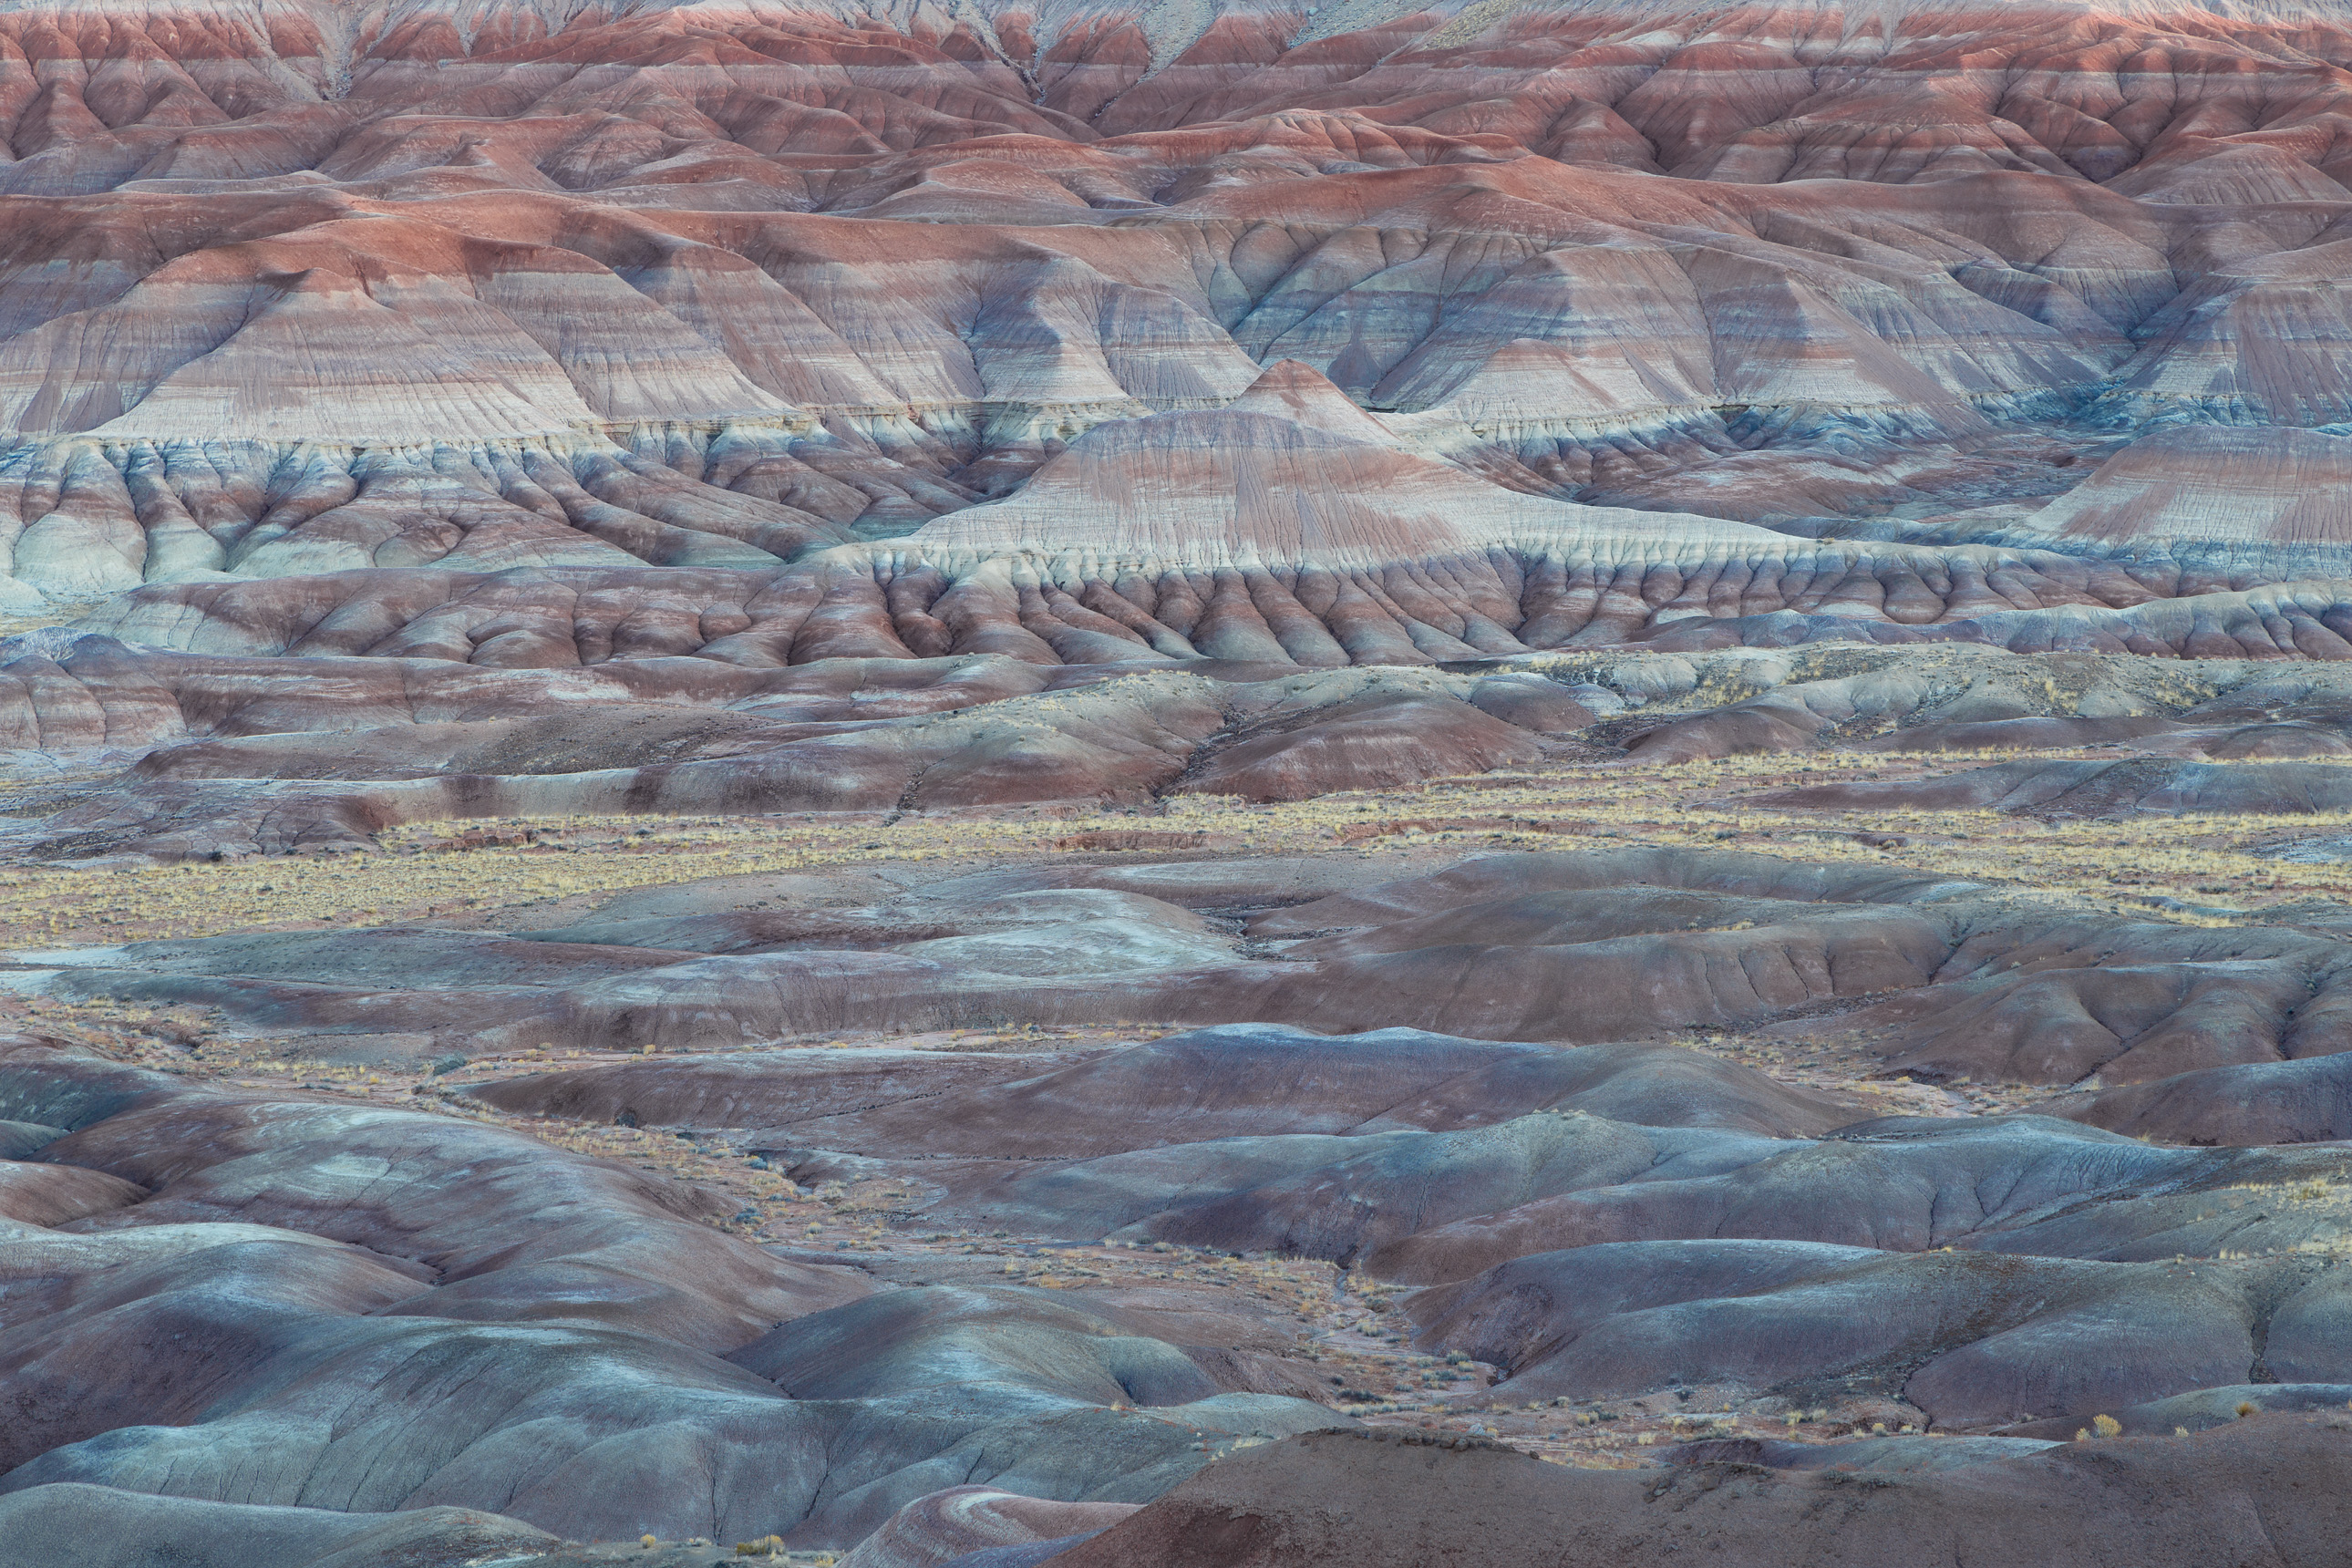 Little Painted Desert in Arizona